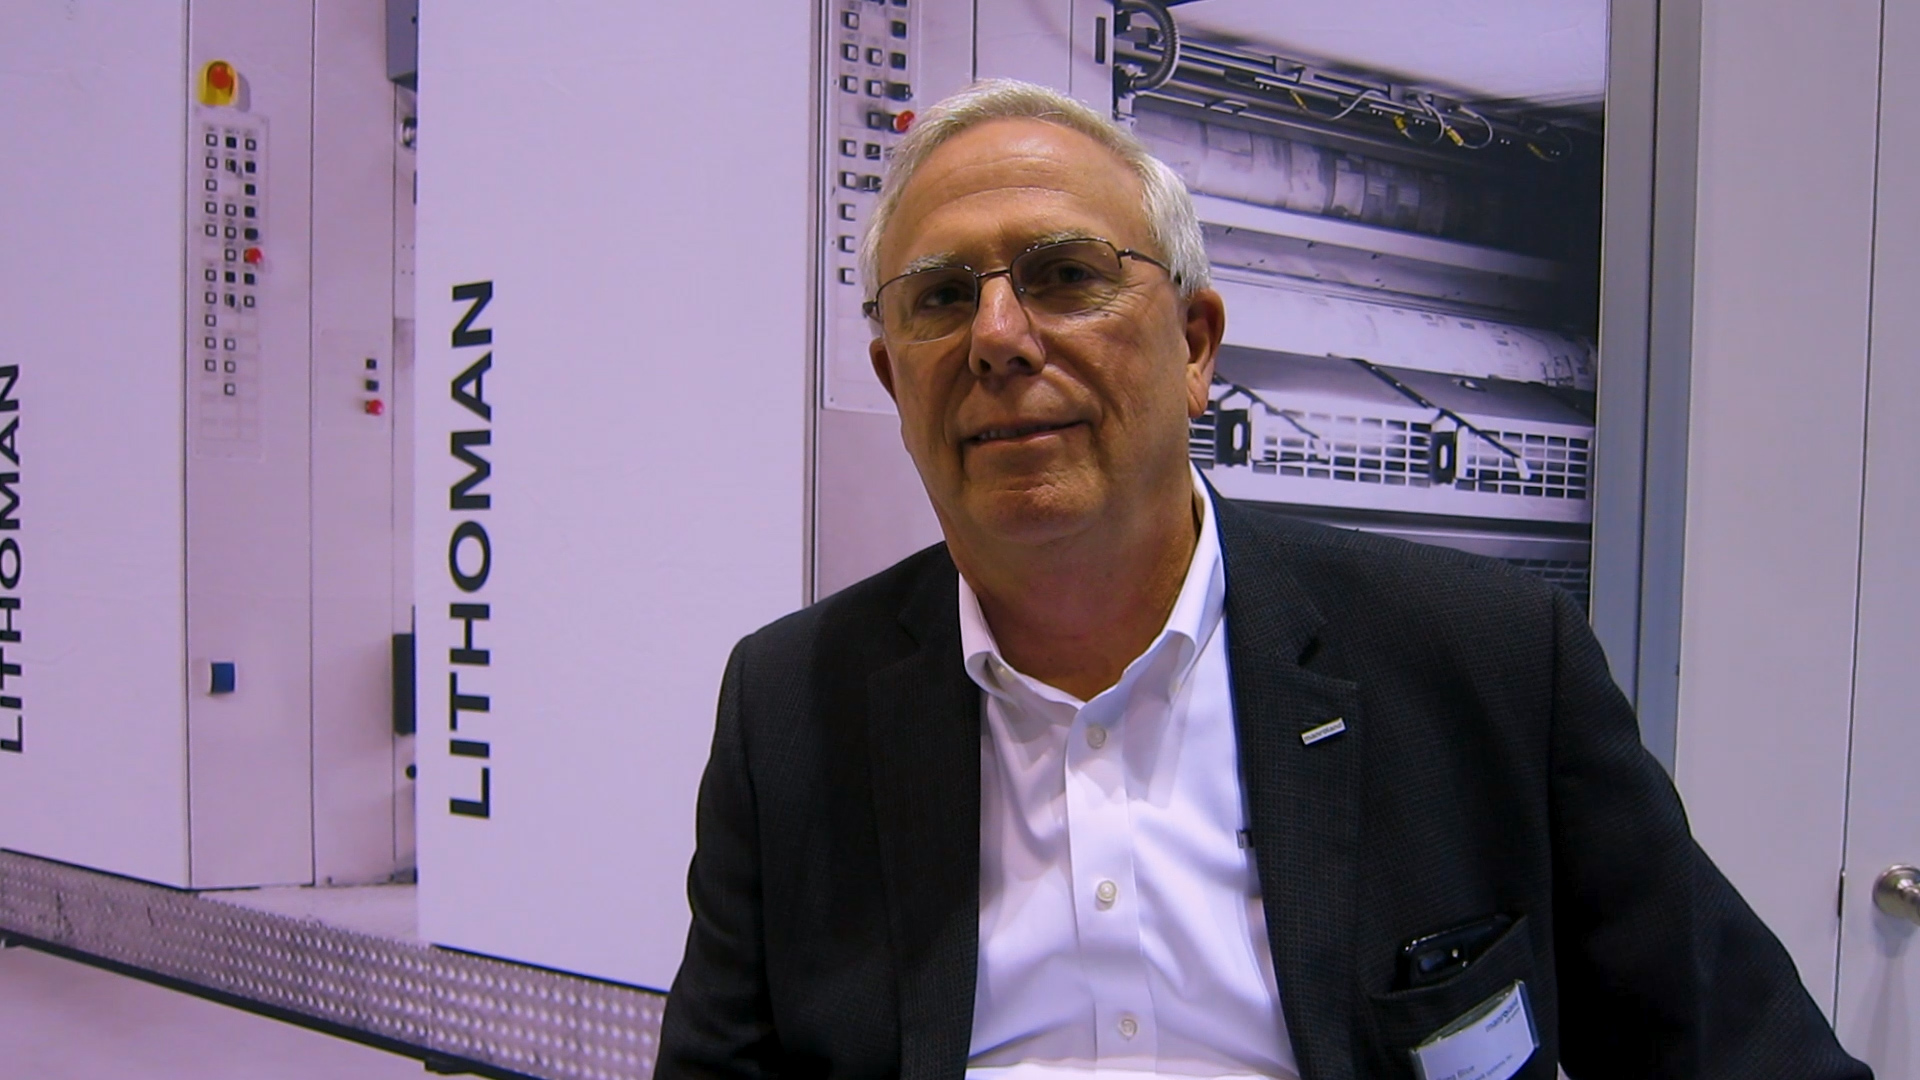 Video preview: Frank Vists manroland web systems